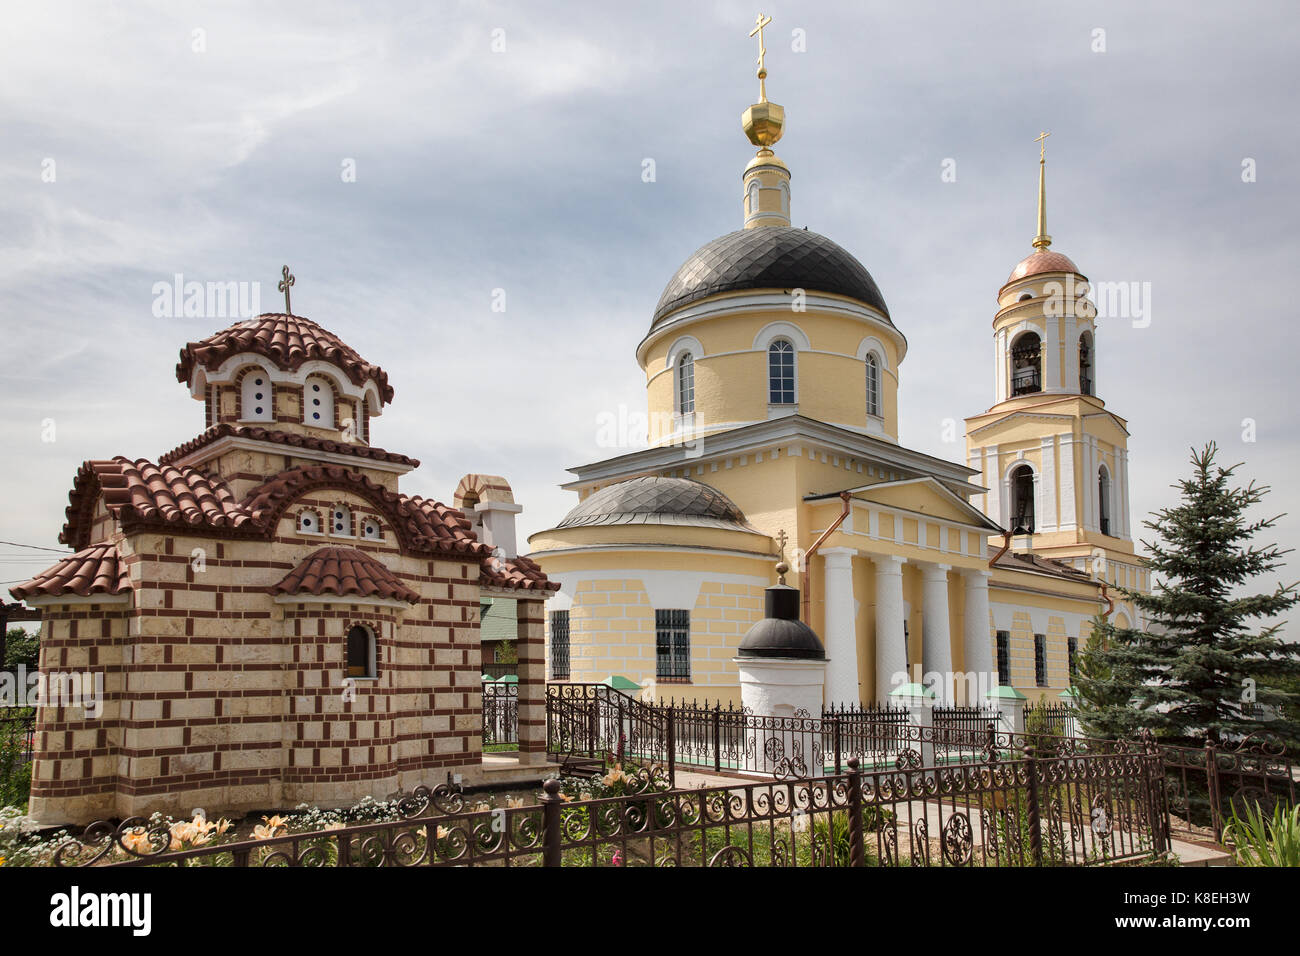 Resurrection Cathedral (Cherepovets) - history and modernity 99